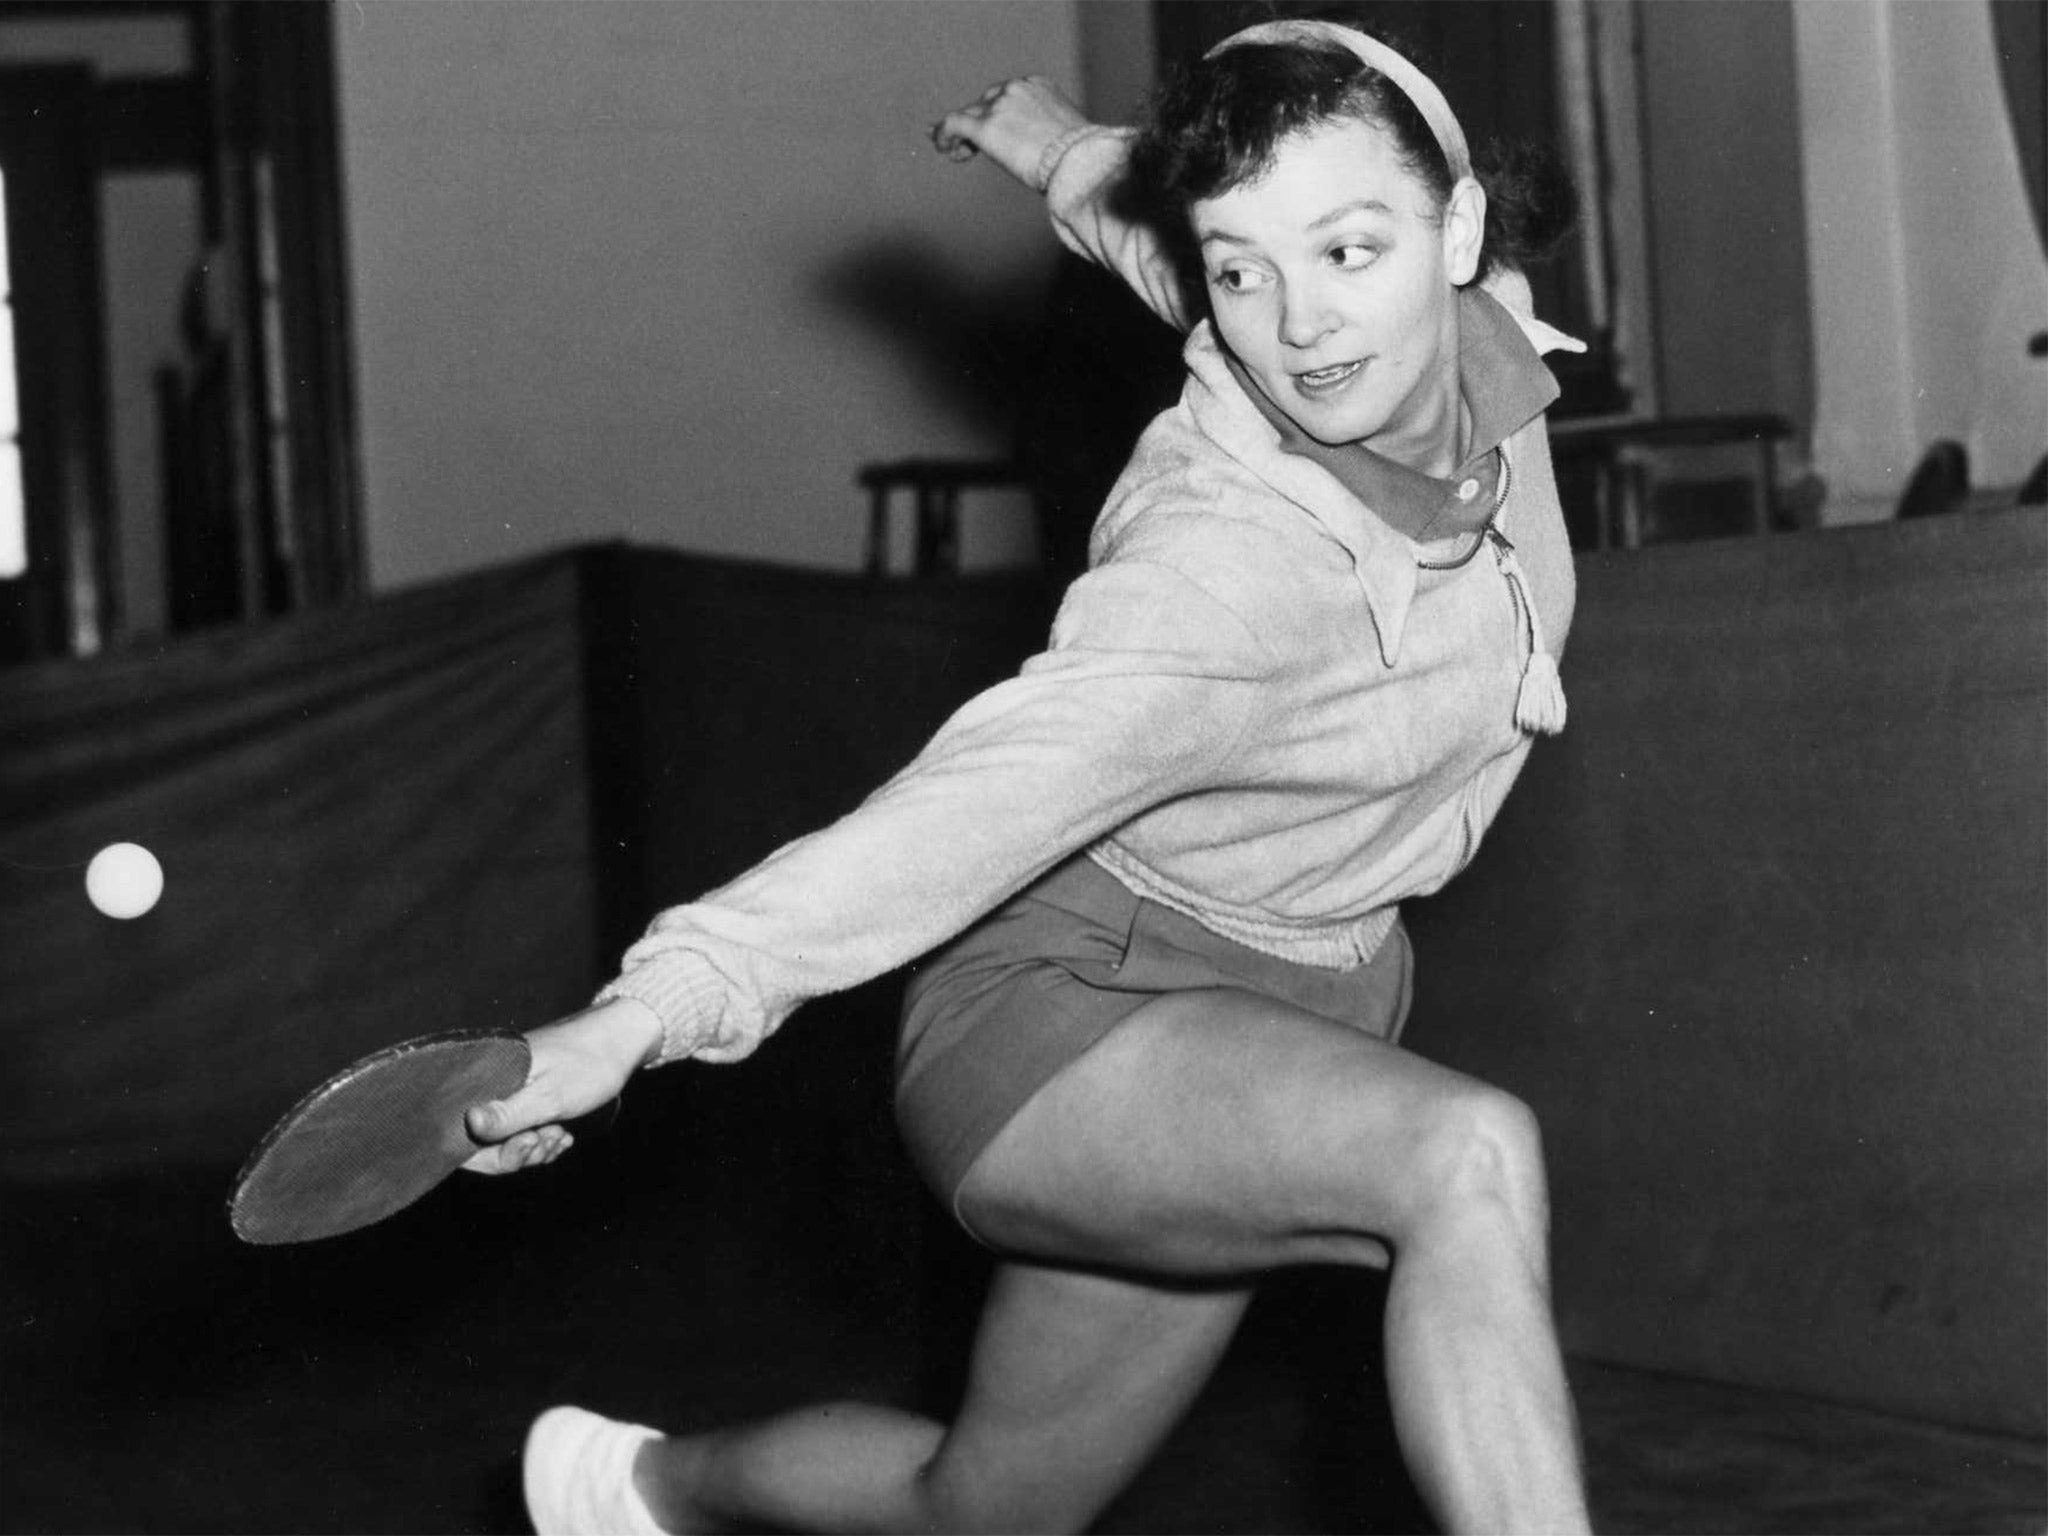 Rosalind Rowe Table tennis player who became a multiple world